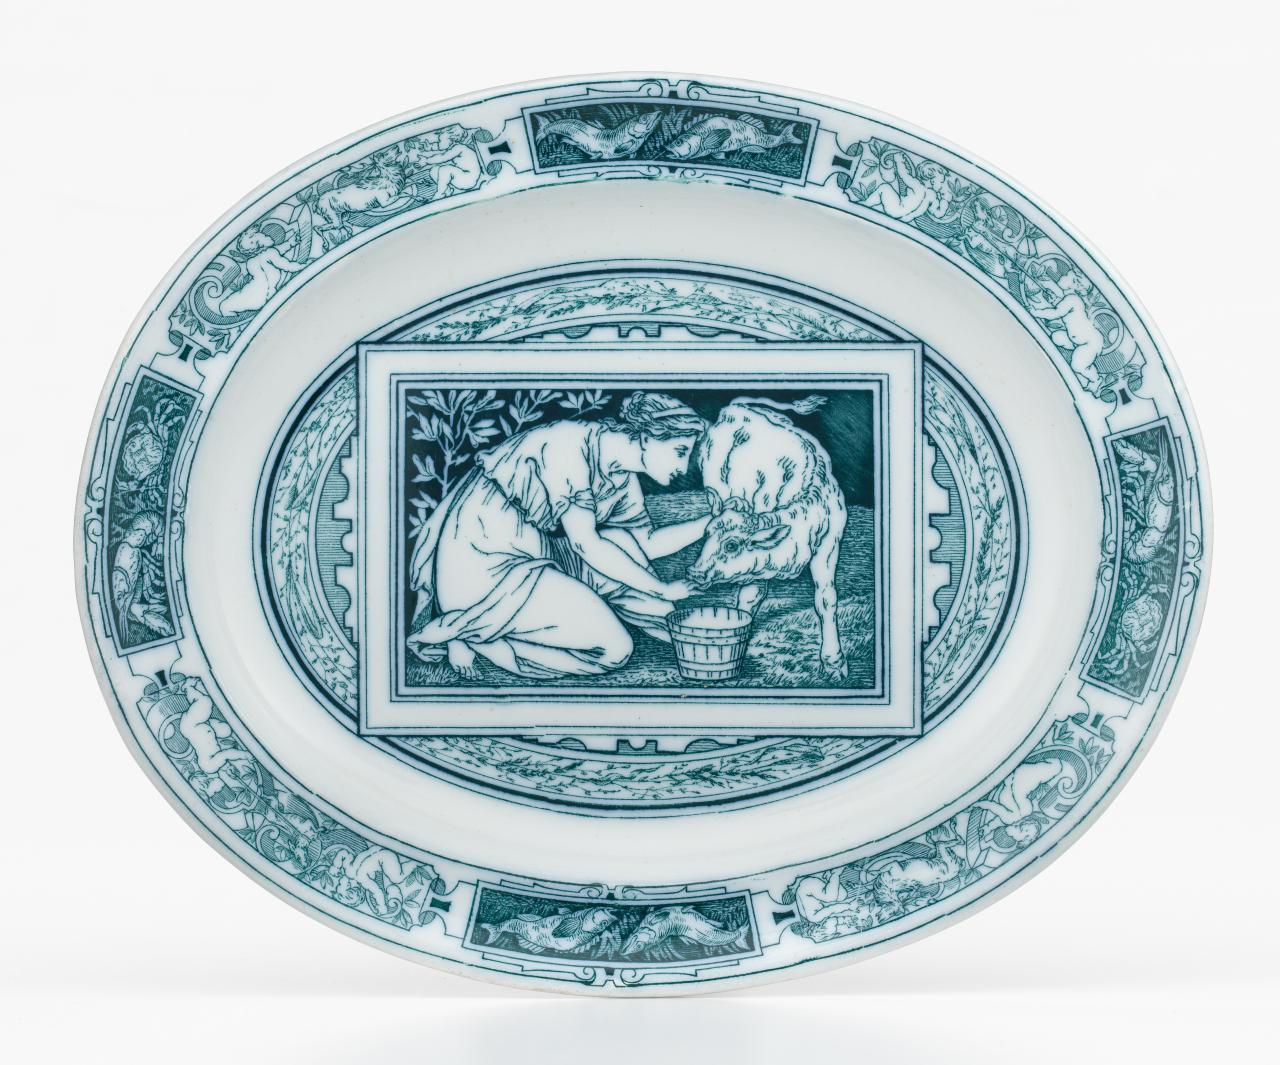 Banquet service pattern, serving plate